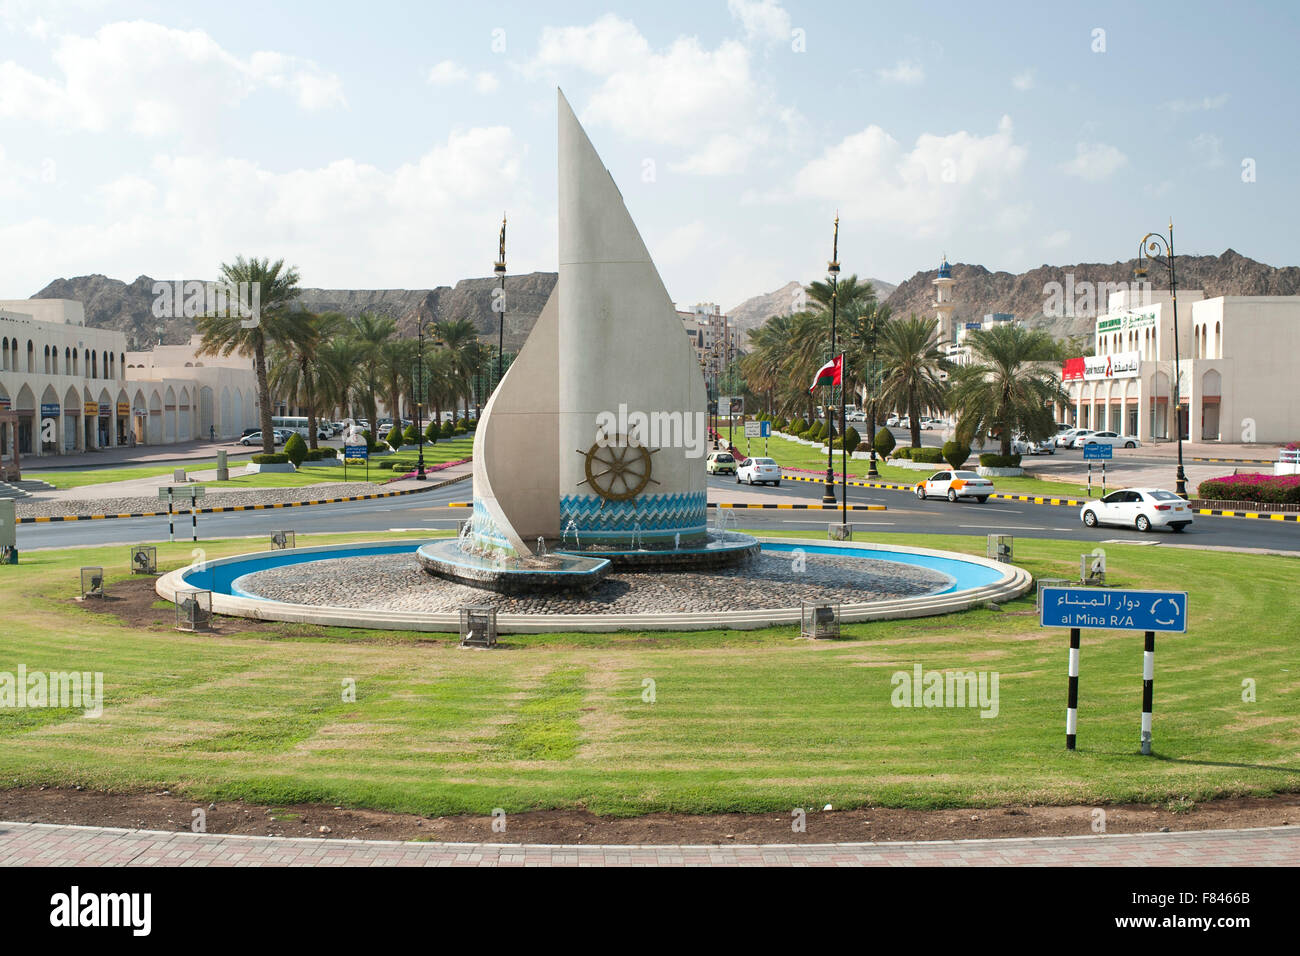 Al Mina traffic circle / roundabout in Muscat, the capital of the Sultanate of Oman. - Stock Image